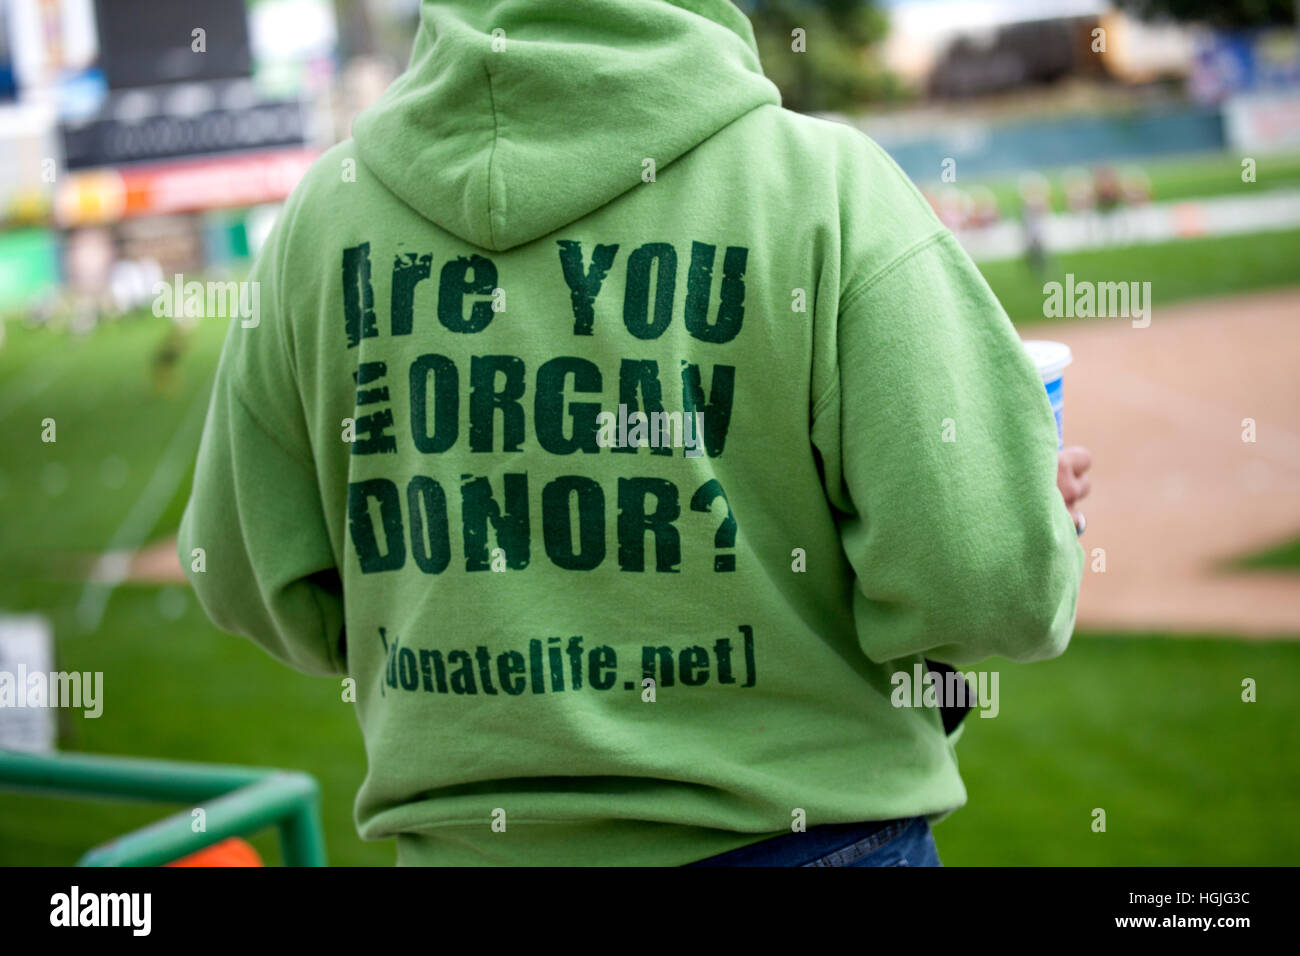 Man wearing green sweatshirt with 'Are you an organ donor?' on the back with donatelife URL address. St - Stock Image